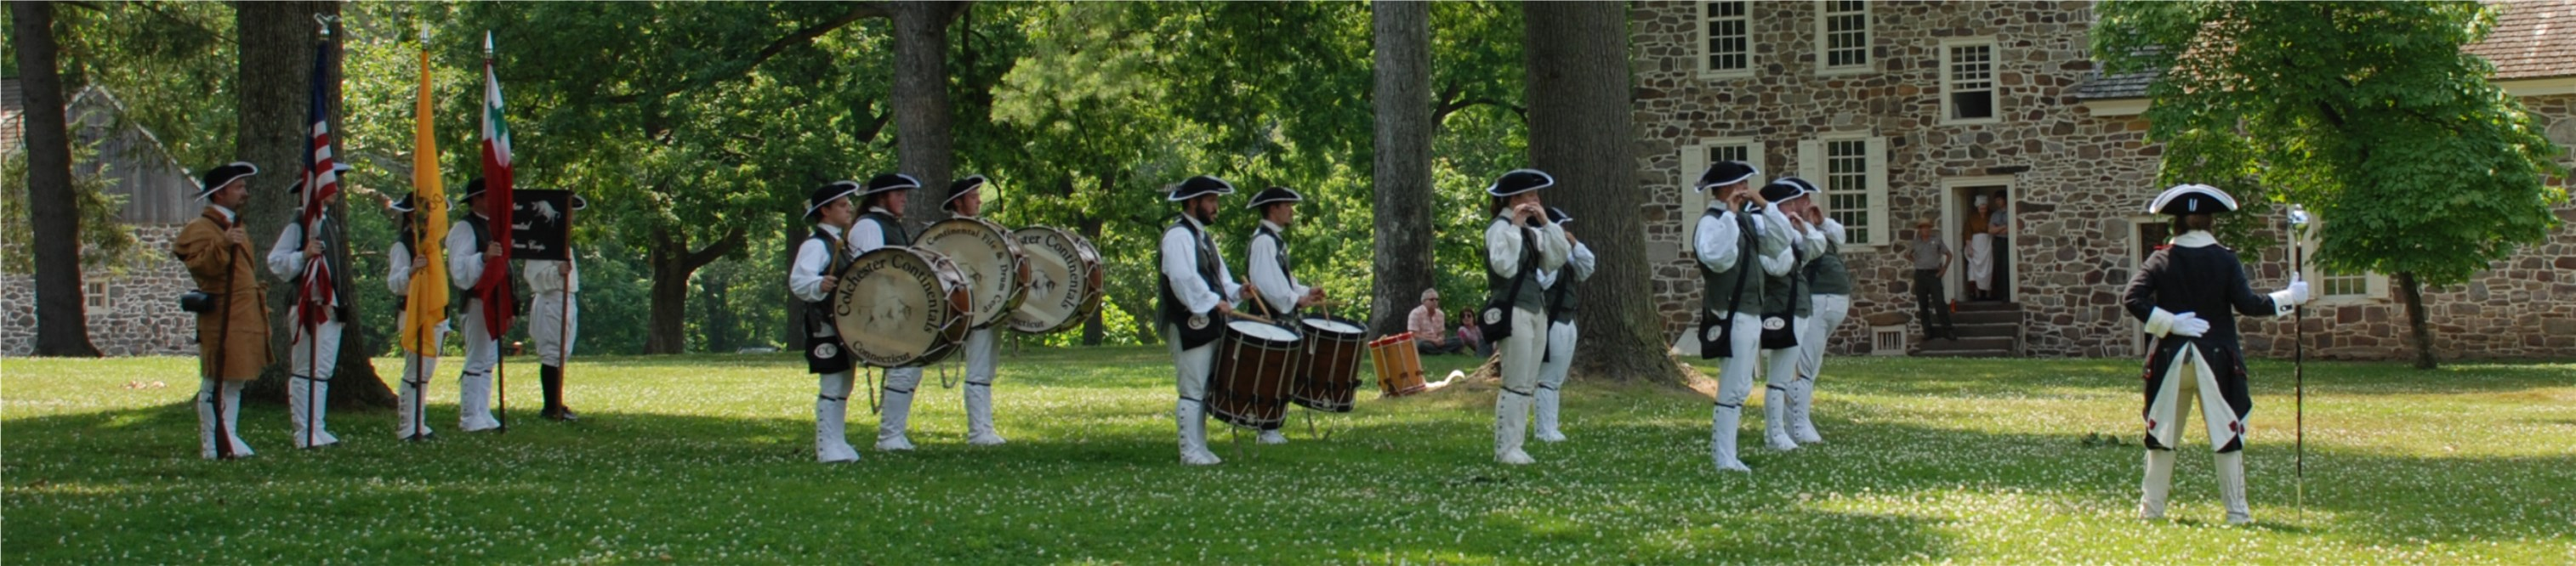 CCFDC Fife and Drum Corps